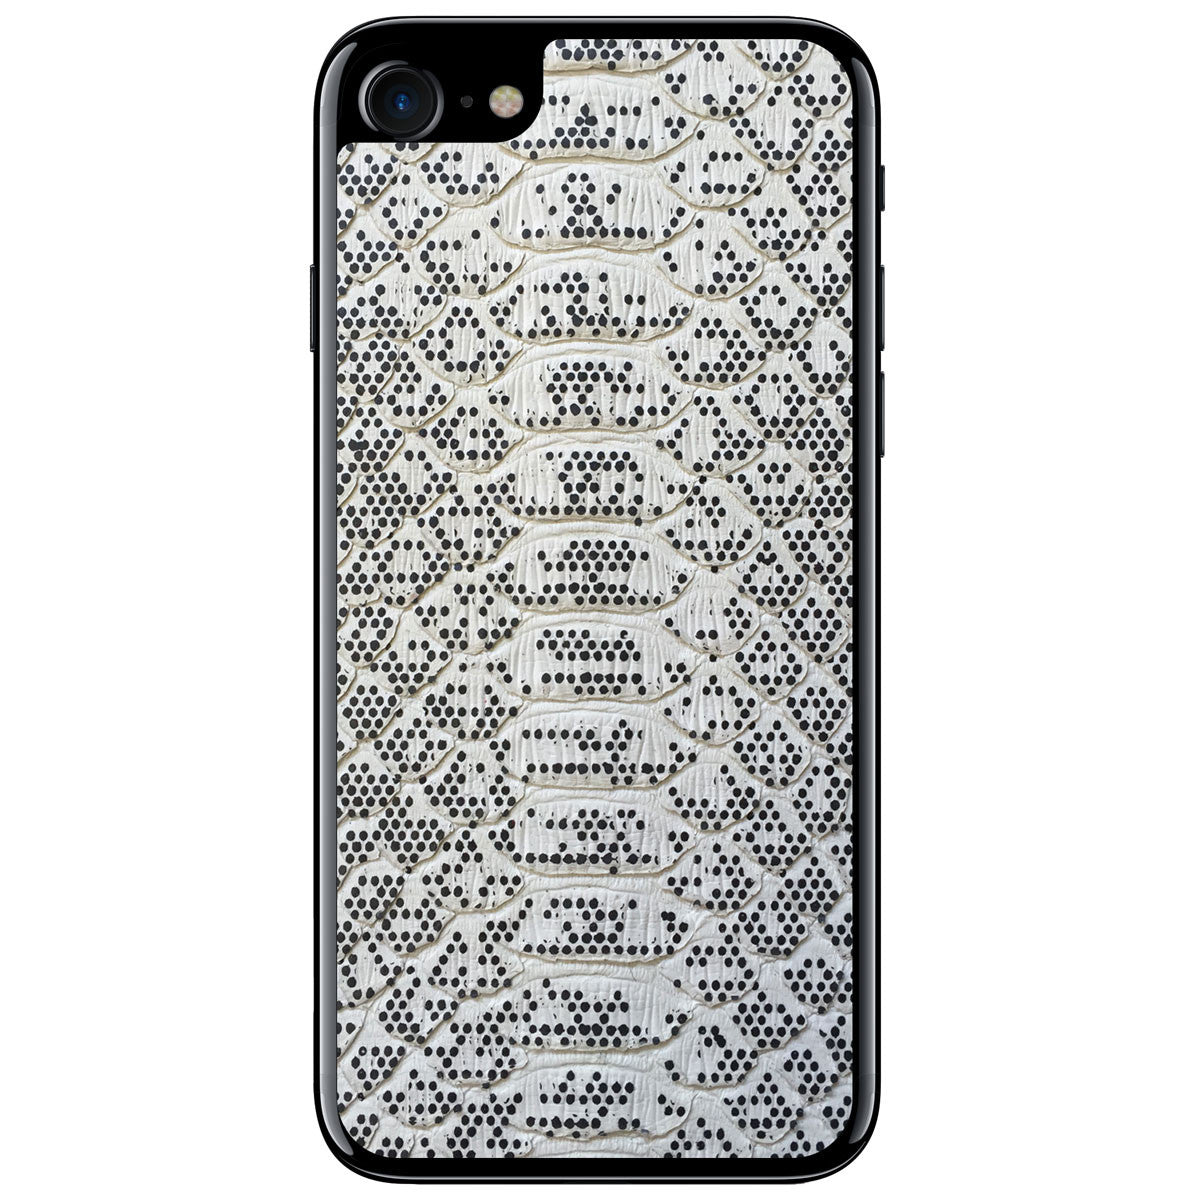 Pixelated Python iPhone 7 Leather Skin